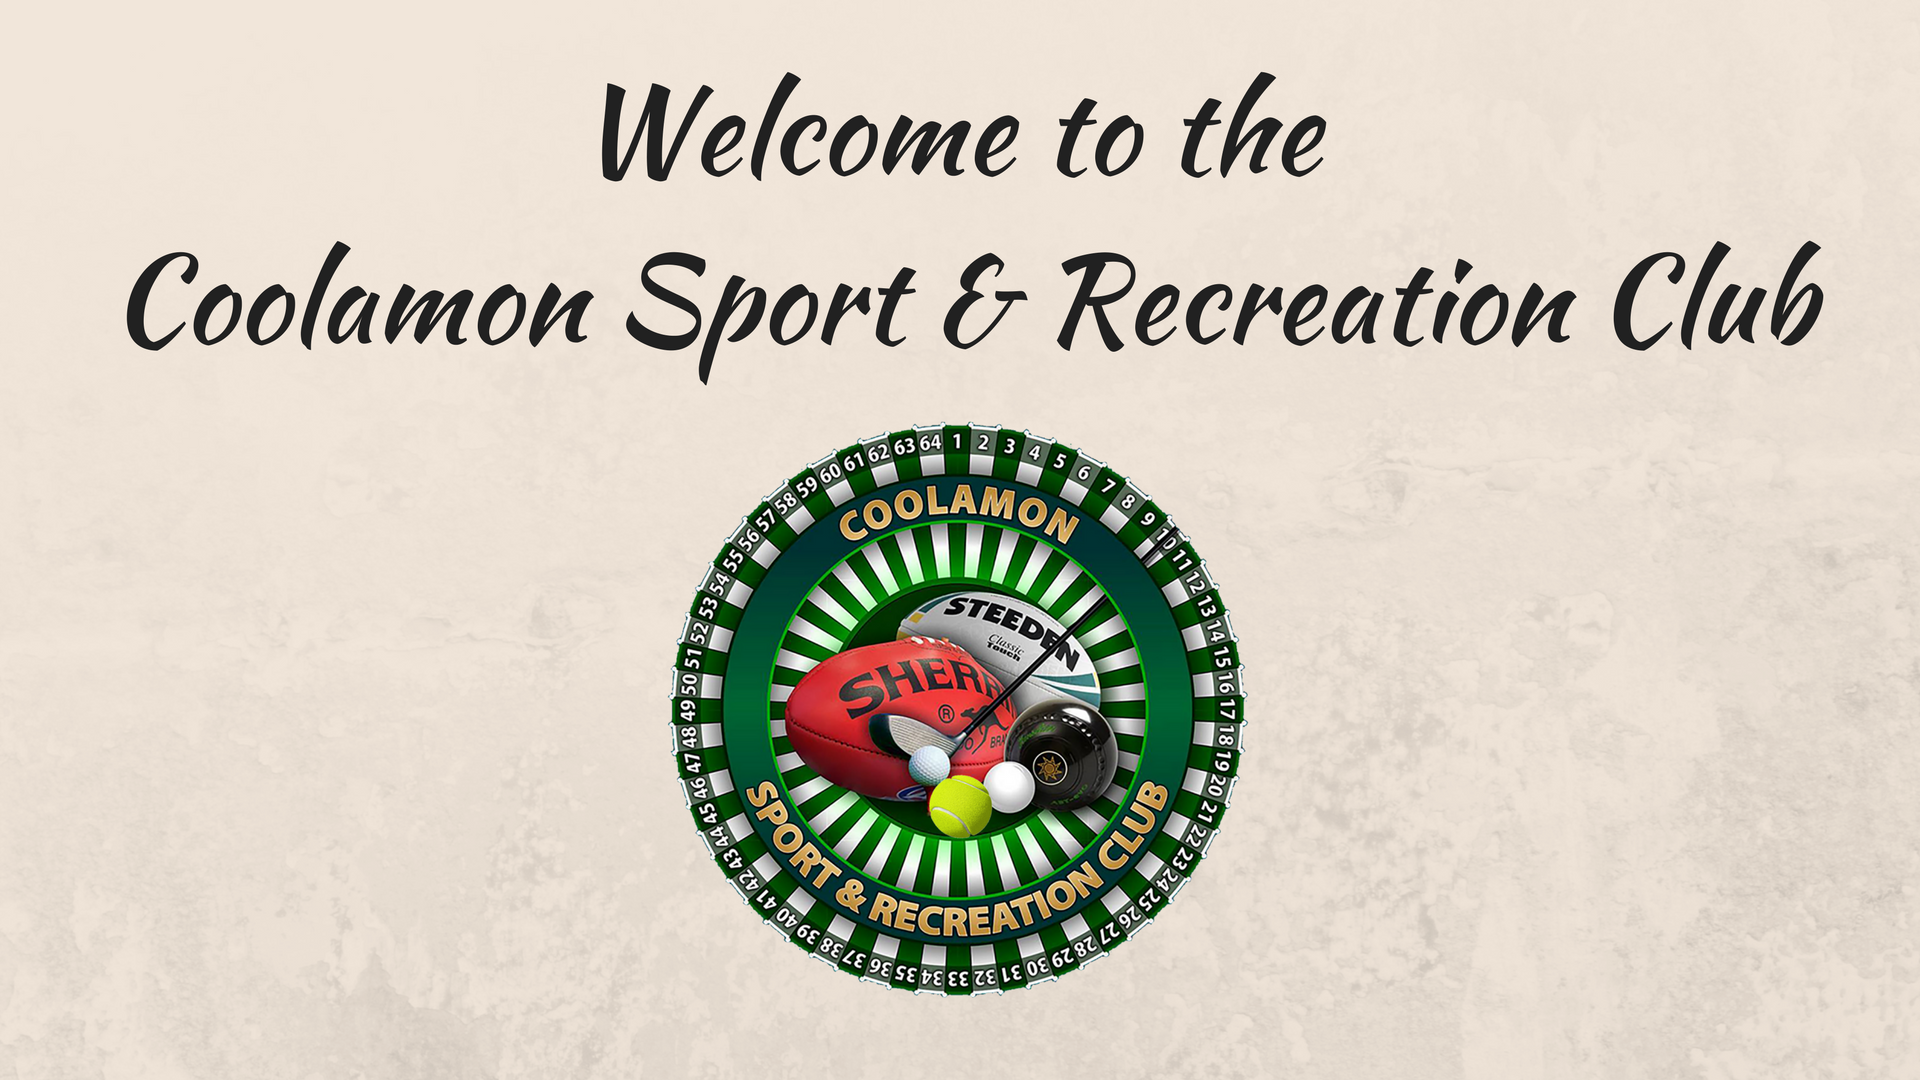 Welcome to the Coolamon Sport & Recreation Club (1)